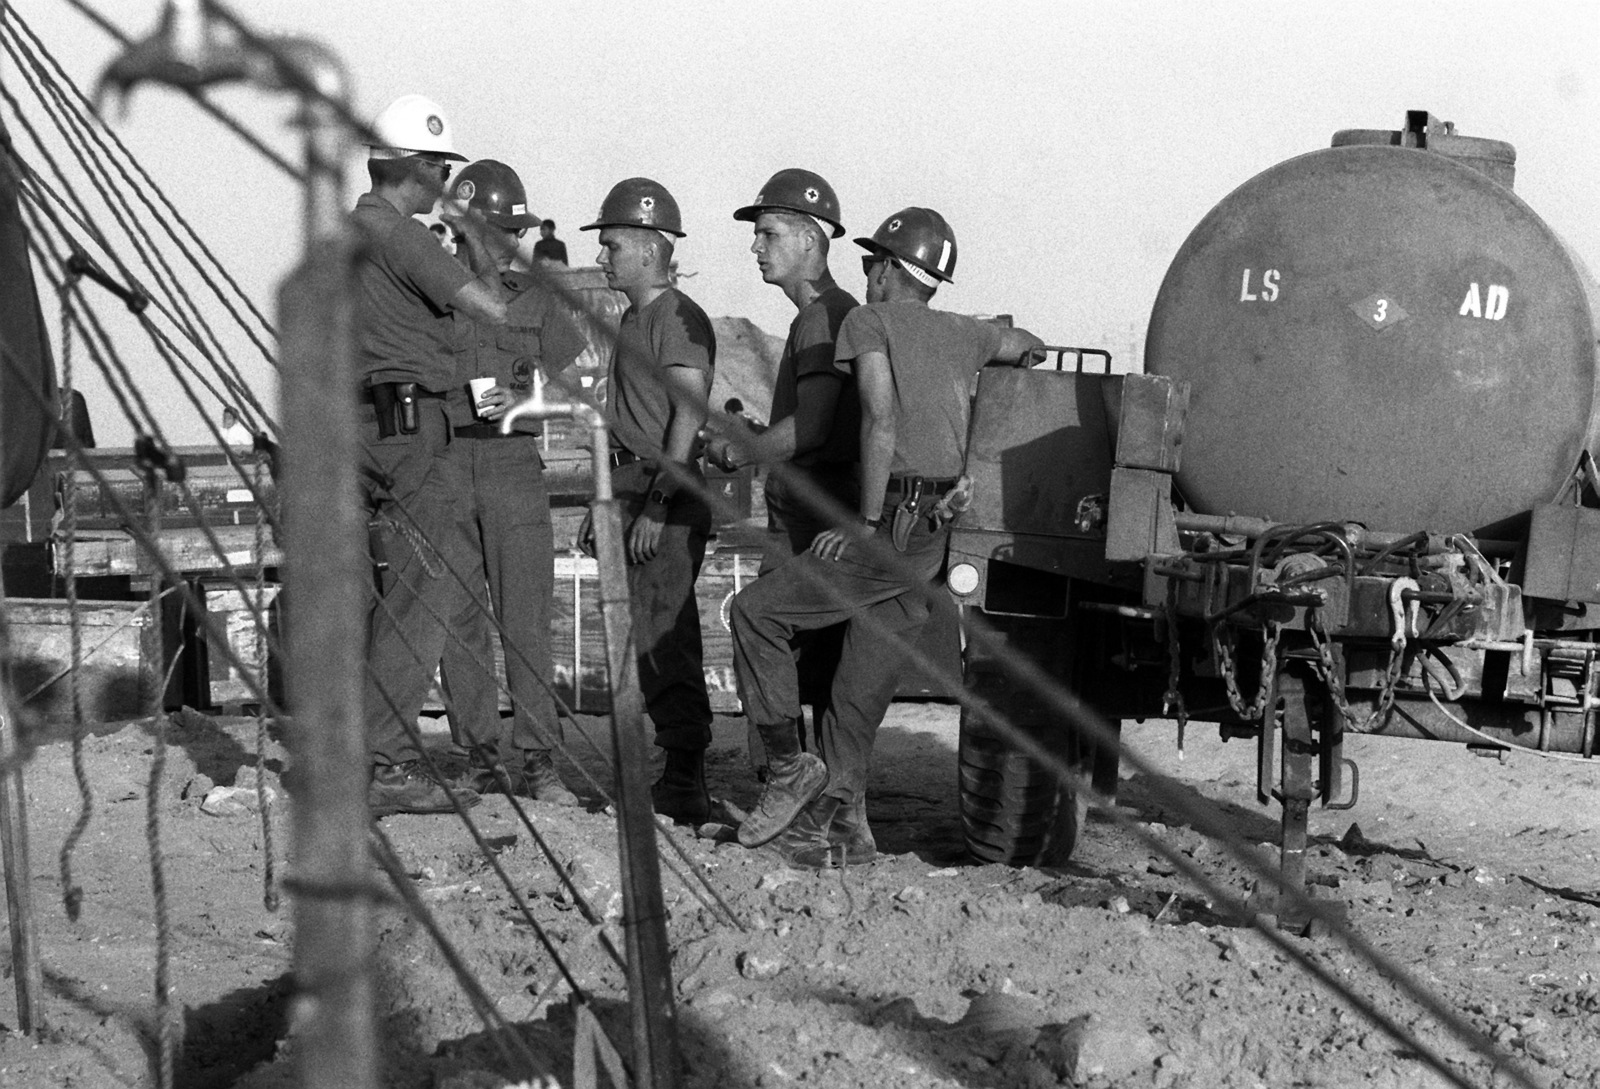 US Navy Seabees discuss their assignment during exercise